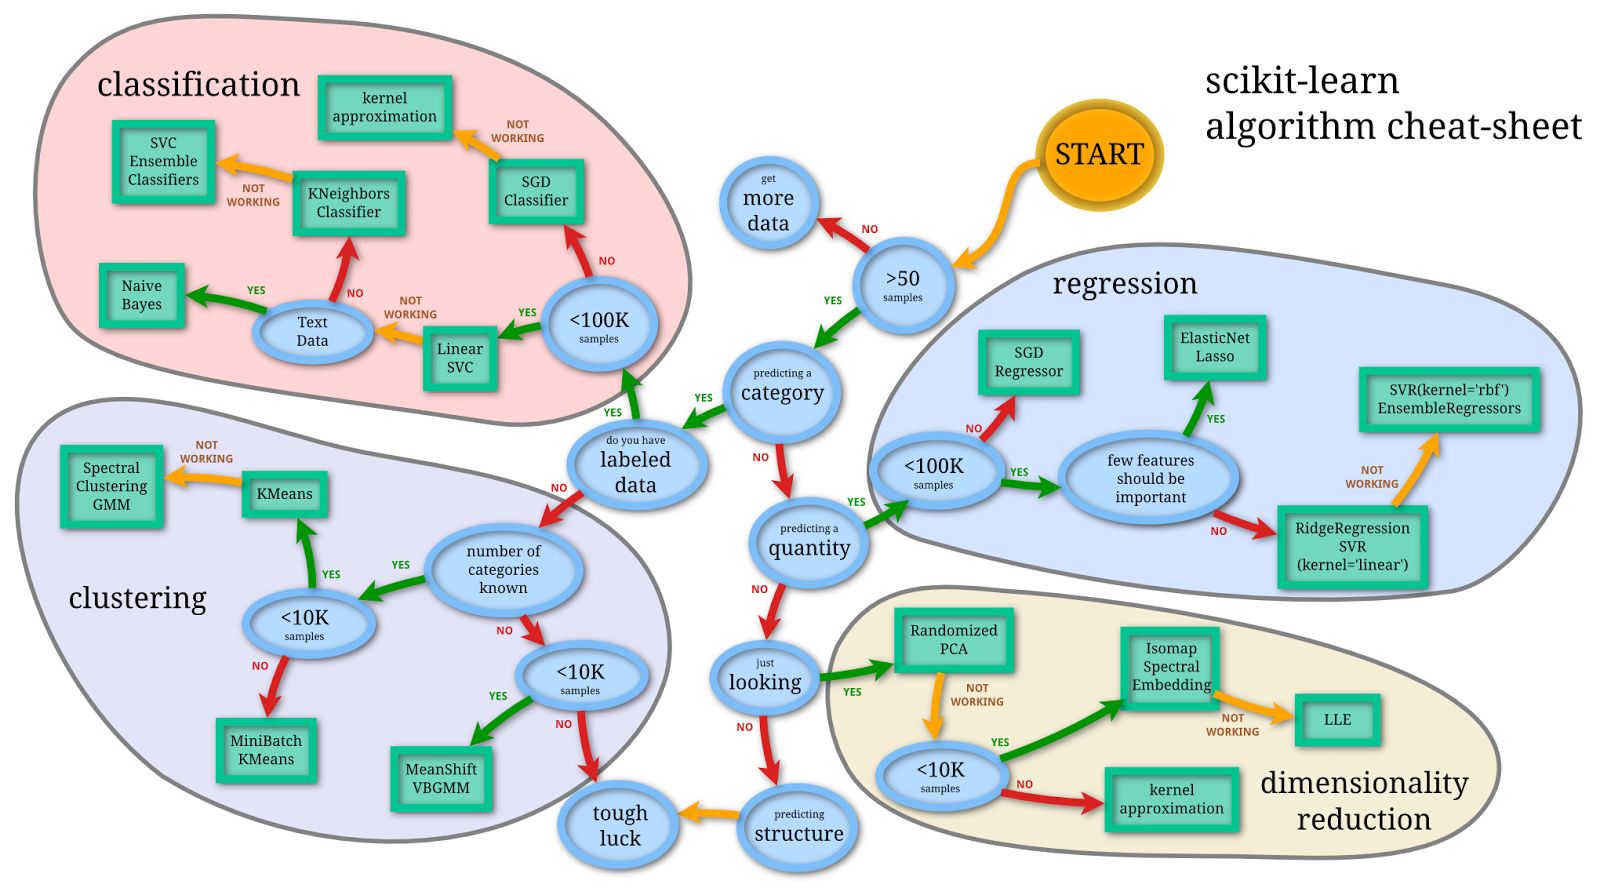 Machine Learning Cheat Sheet (for scikit-learn)